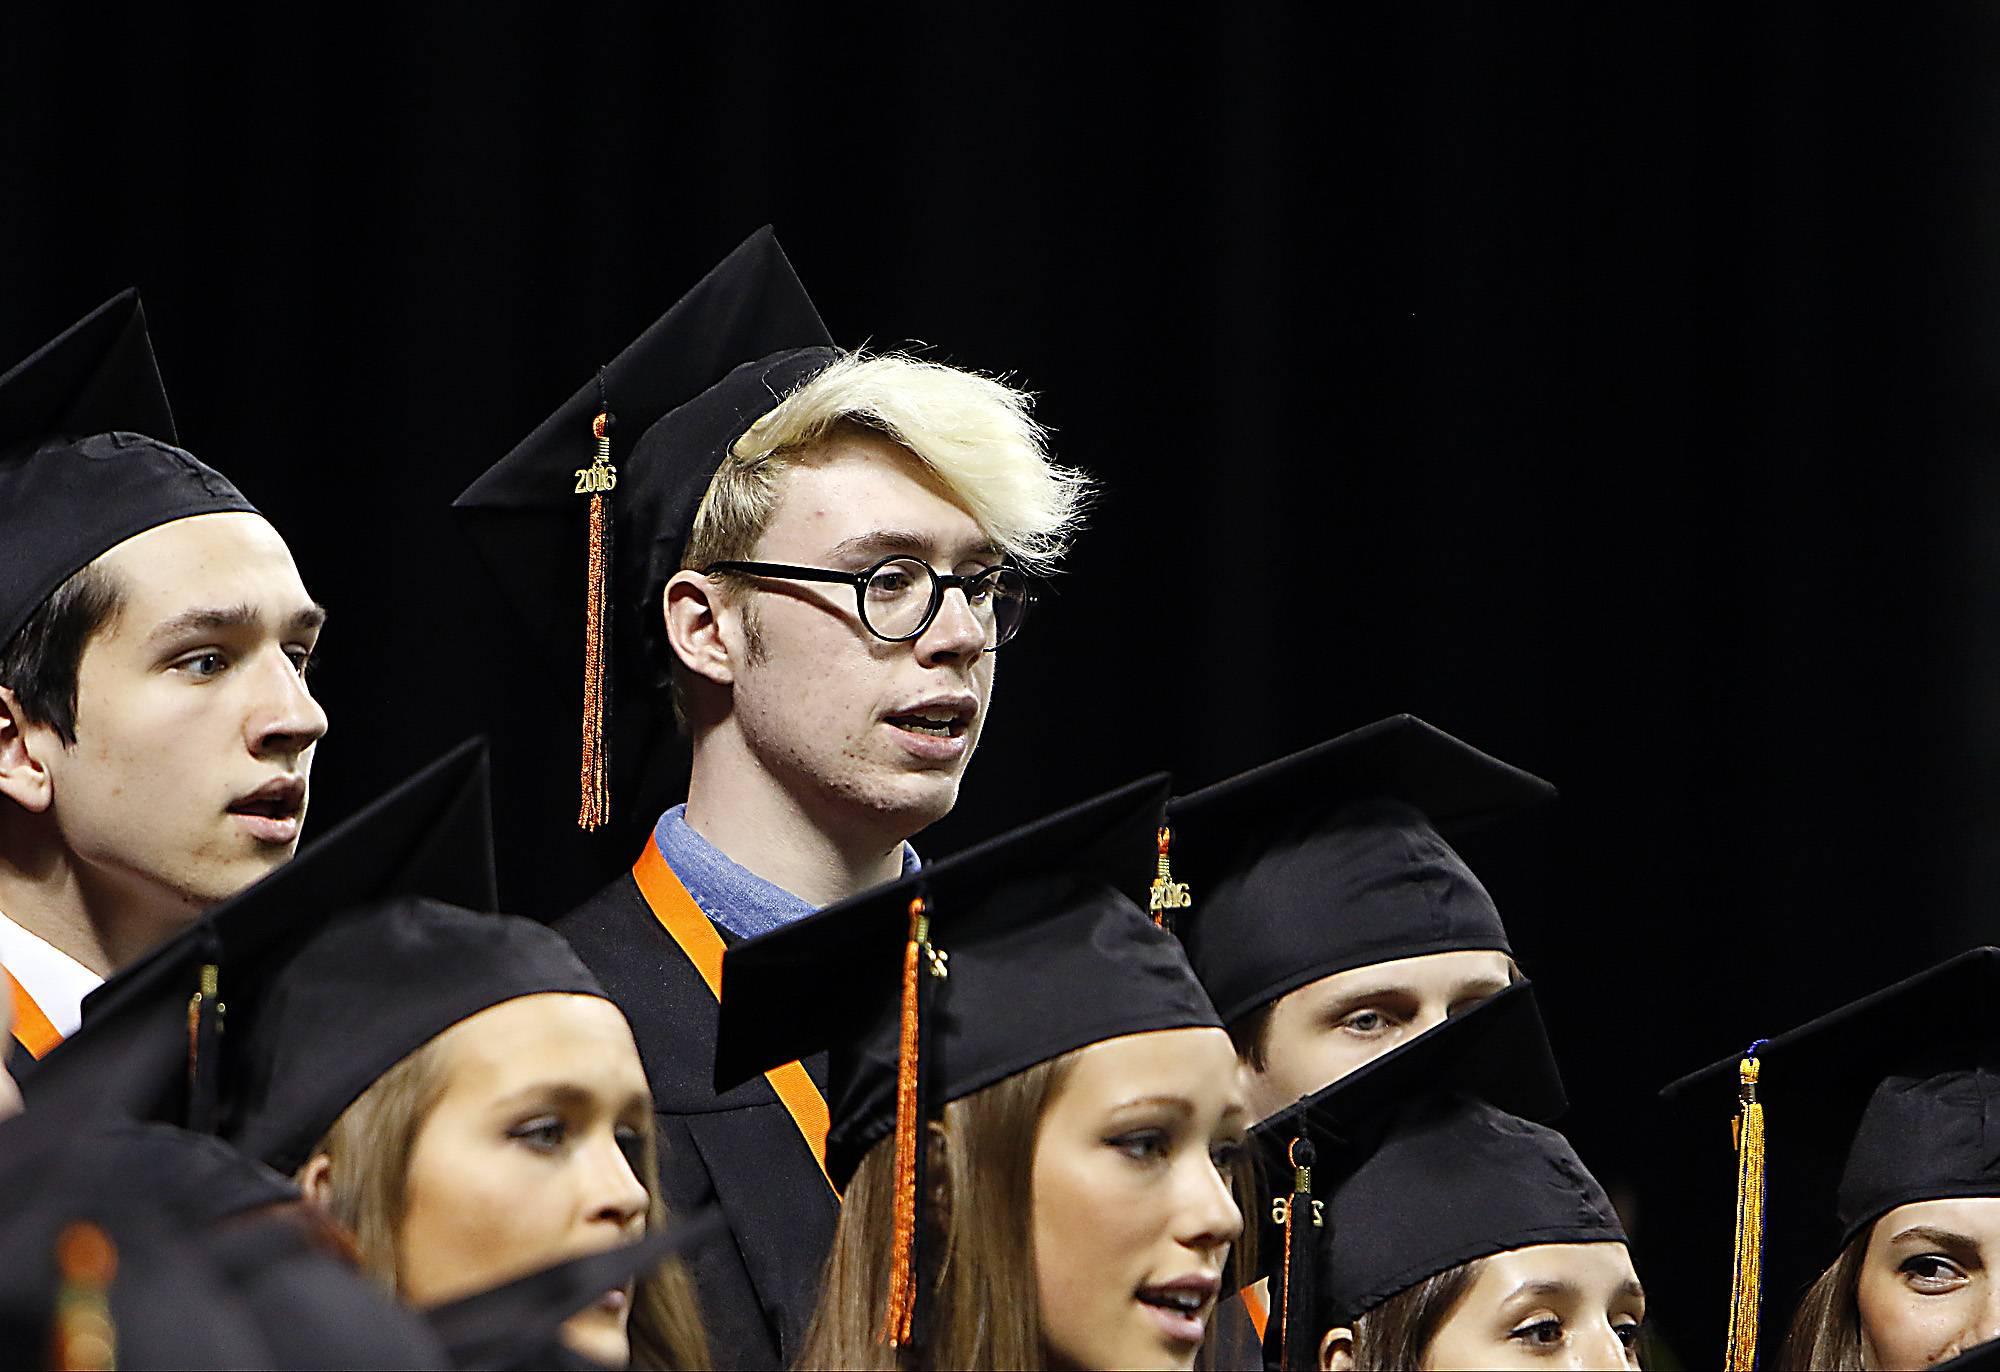 Images from the St. Charles East High School graduation ceremonies at the Sears Centre in Hoffman Estates on Sunday, May 29, 2016.